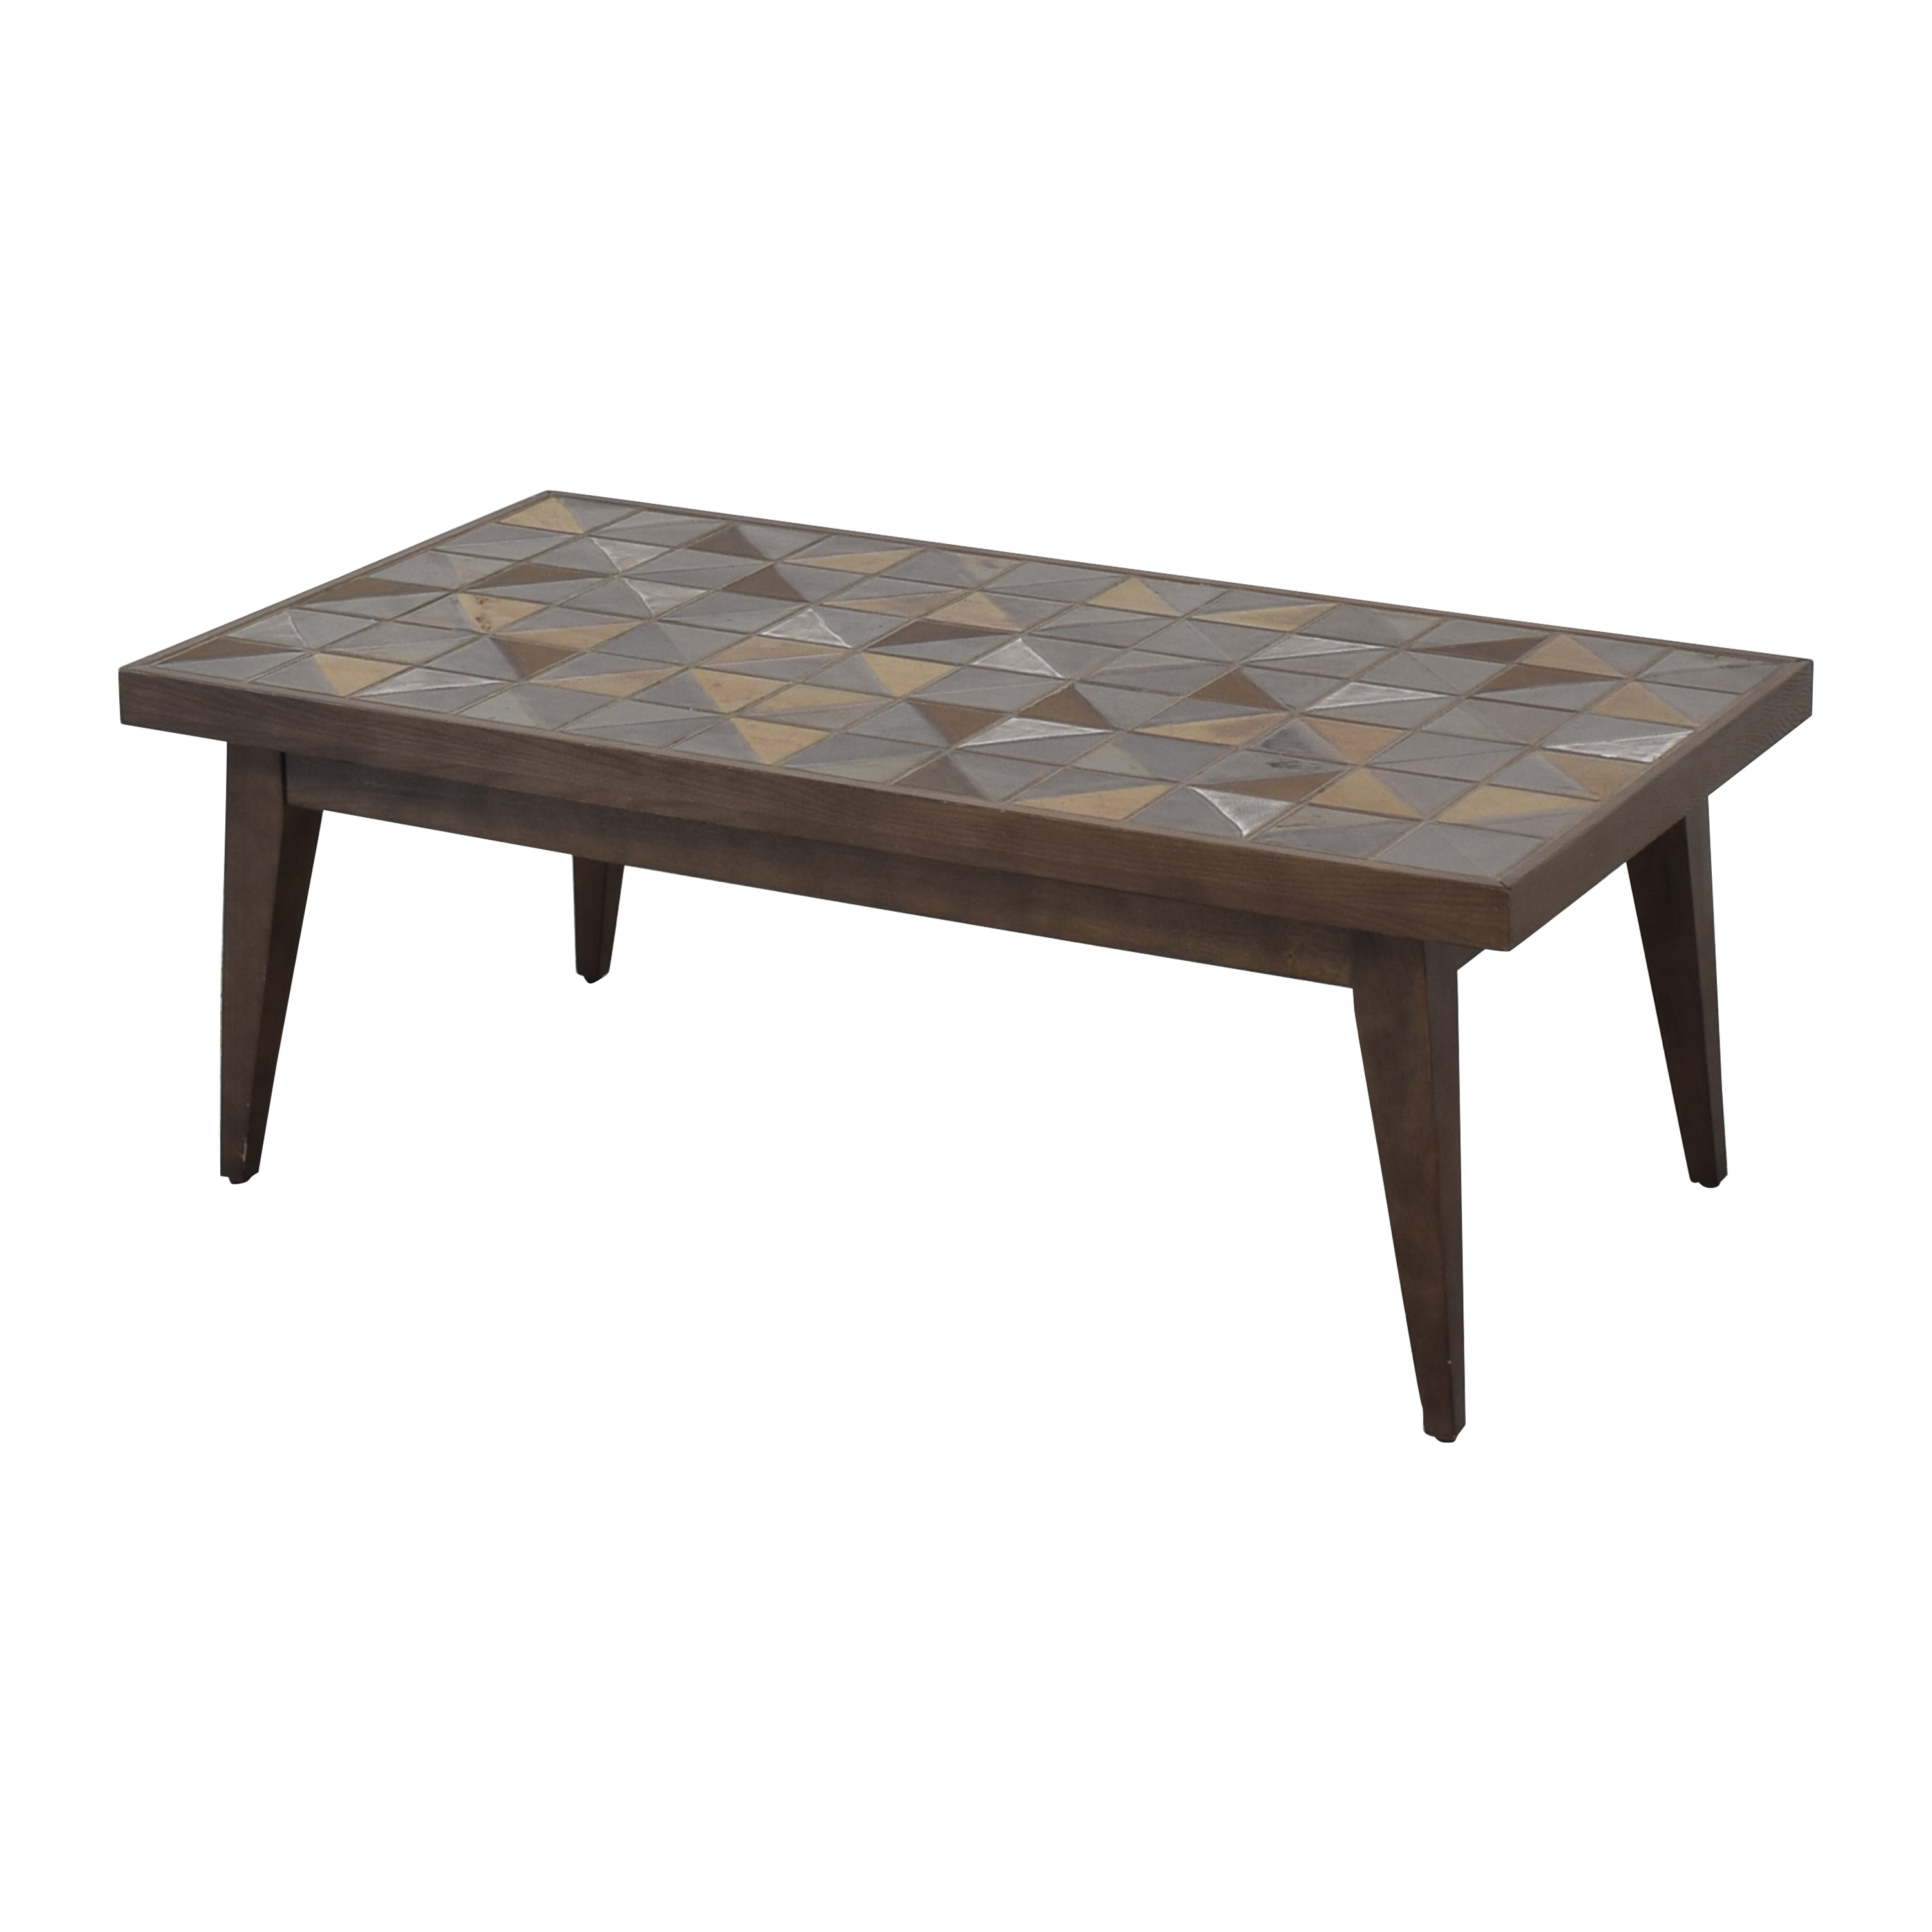 shop West Elm Lubna Chowdhary Coffee Table West Elm Coffee Tables